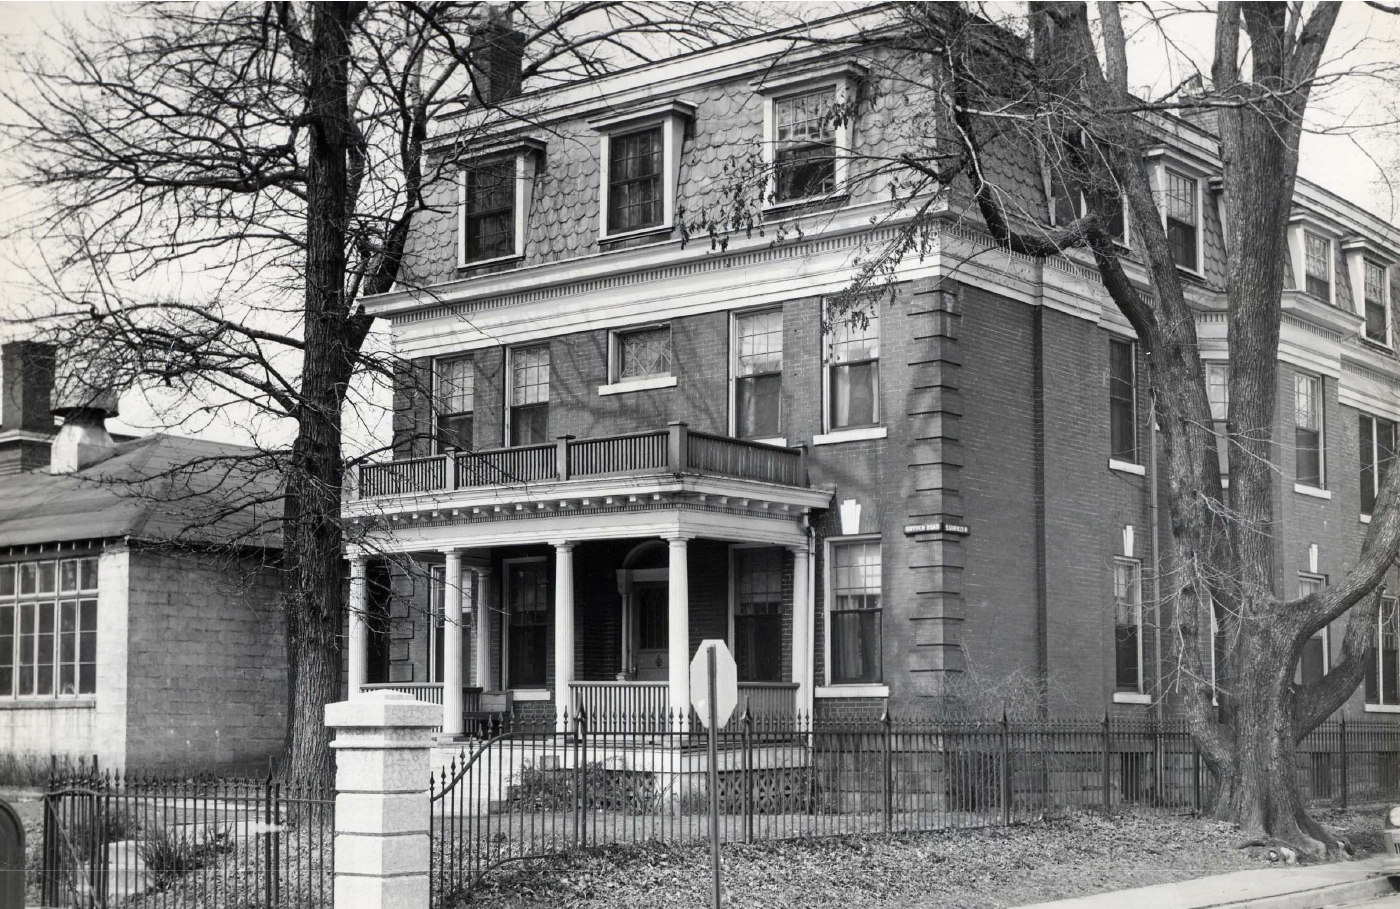 The original 738 Bryden Road, built in the early 1900's as a lodge for the Columbus School for girls.